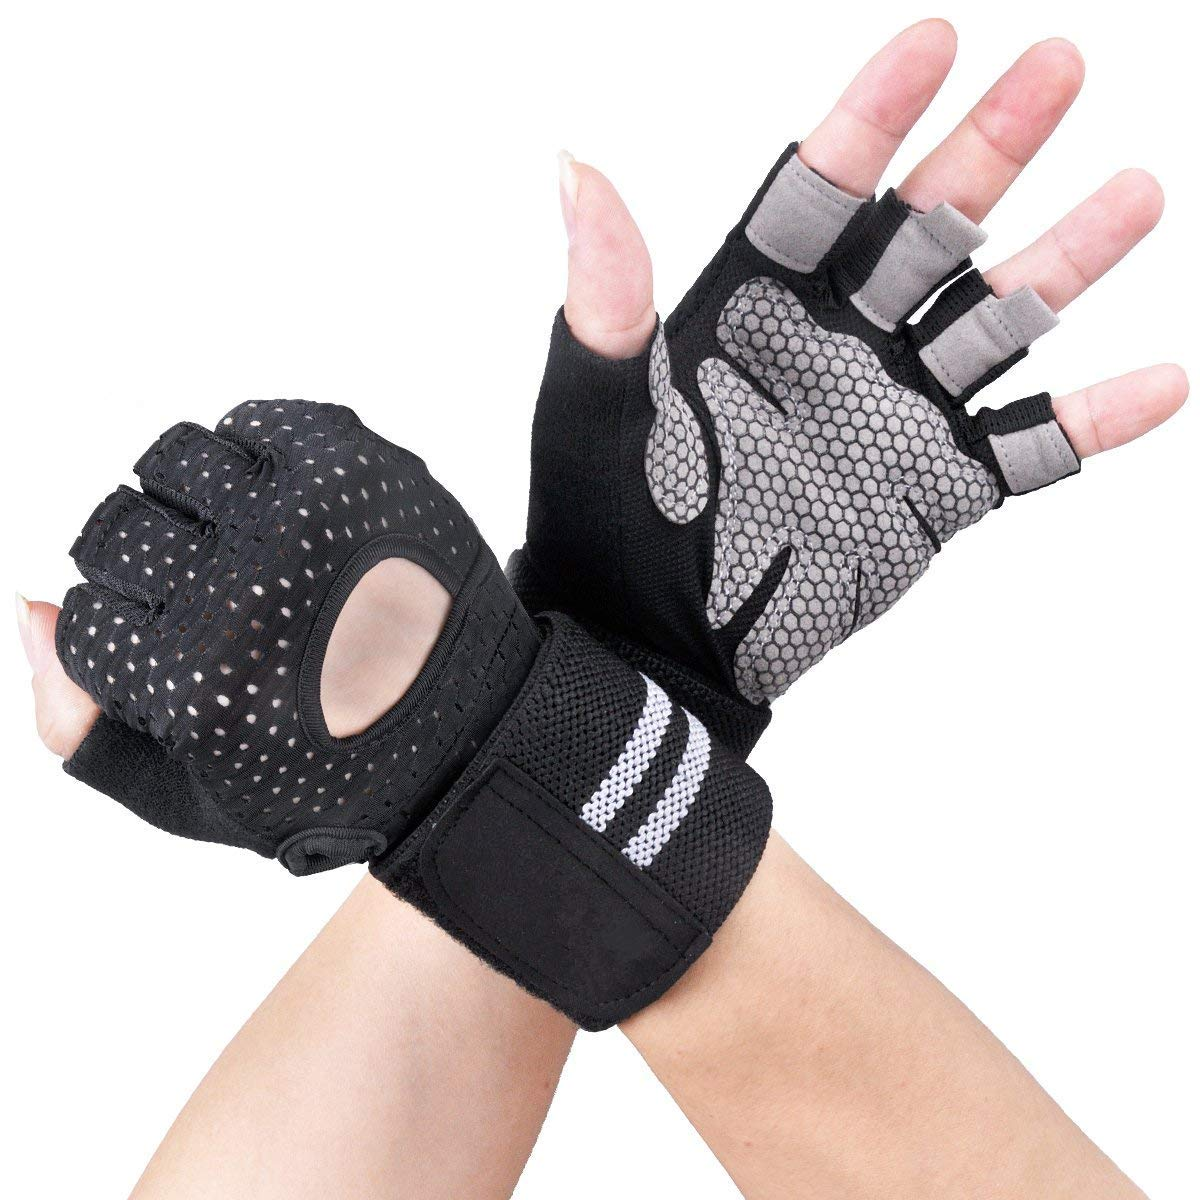 Avril Tian Breathable Ultralight Weight Lifting Sport Gloves, Gym Workout Exercise Gloves with Wrist Wrap Support for Powerlifting, Cross Training, Fitness, Bodybuilding, Best for Men & Women (M)